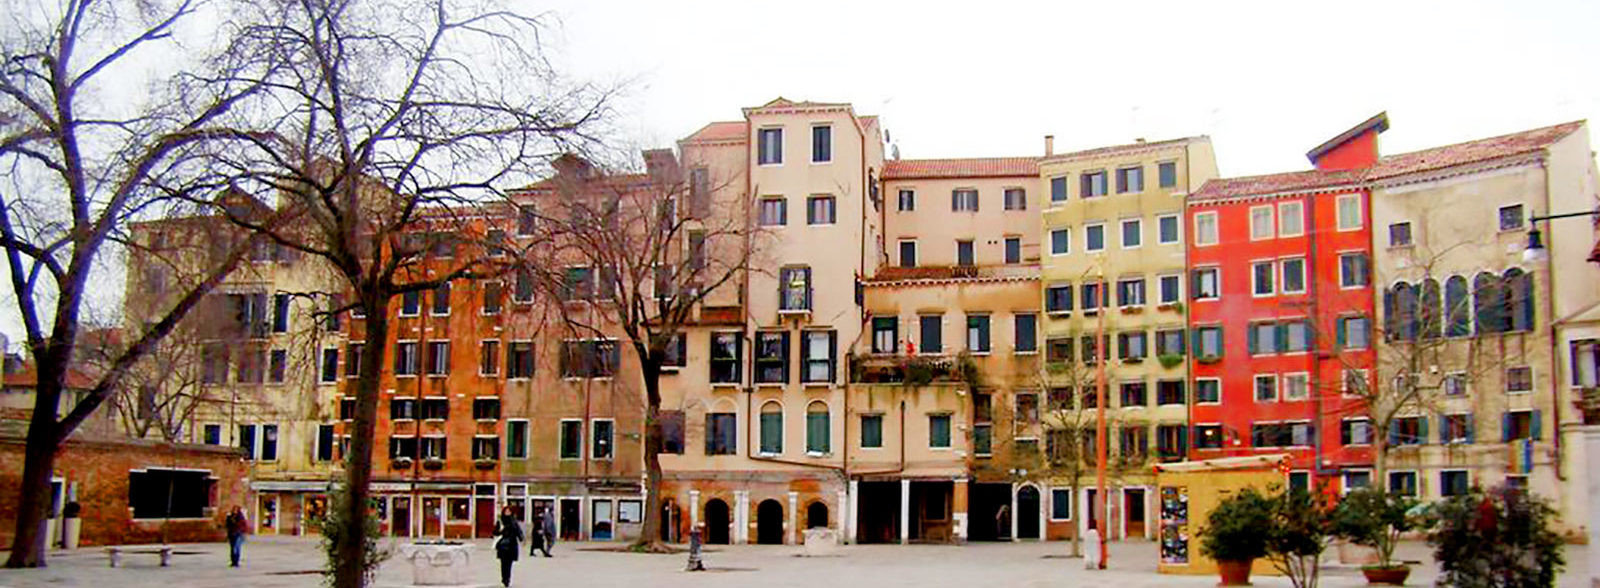 Venice Jewish ghetto:  discovering the neighborhood